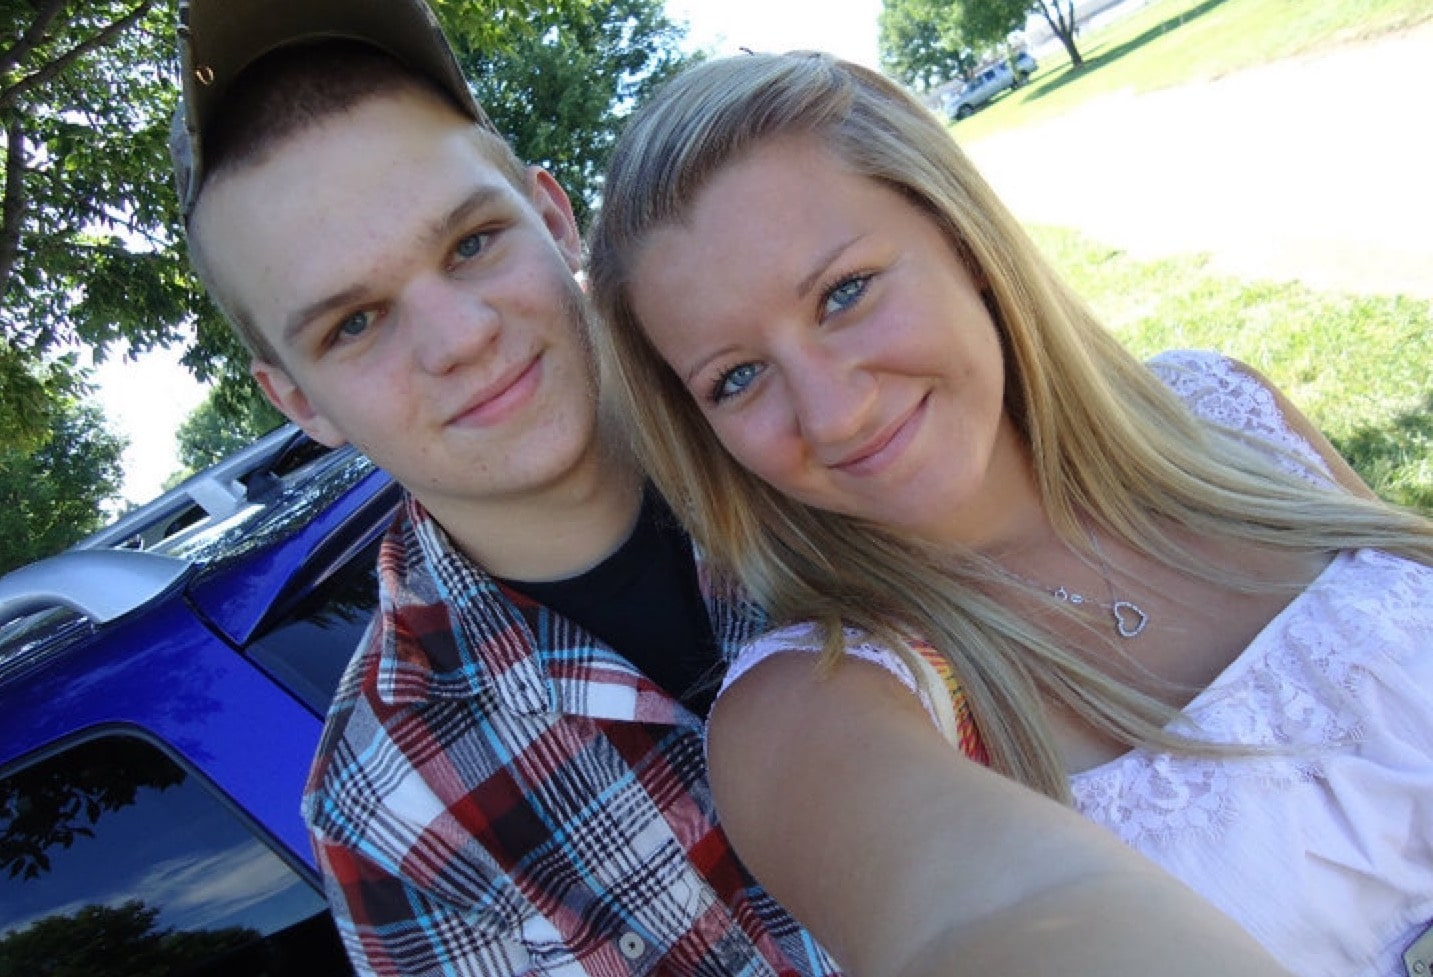 young couple taking a selfie the man wearing a hat and plaid shirt the girl with blonde hair wearing a light pink sleeveless shirt